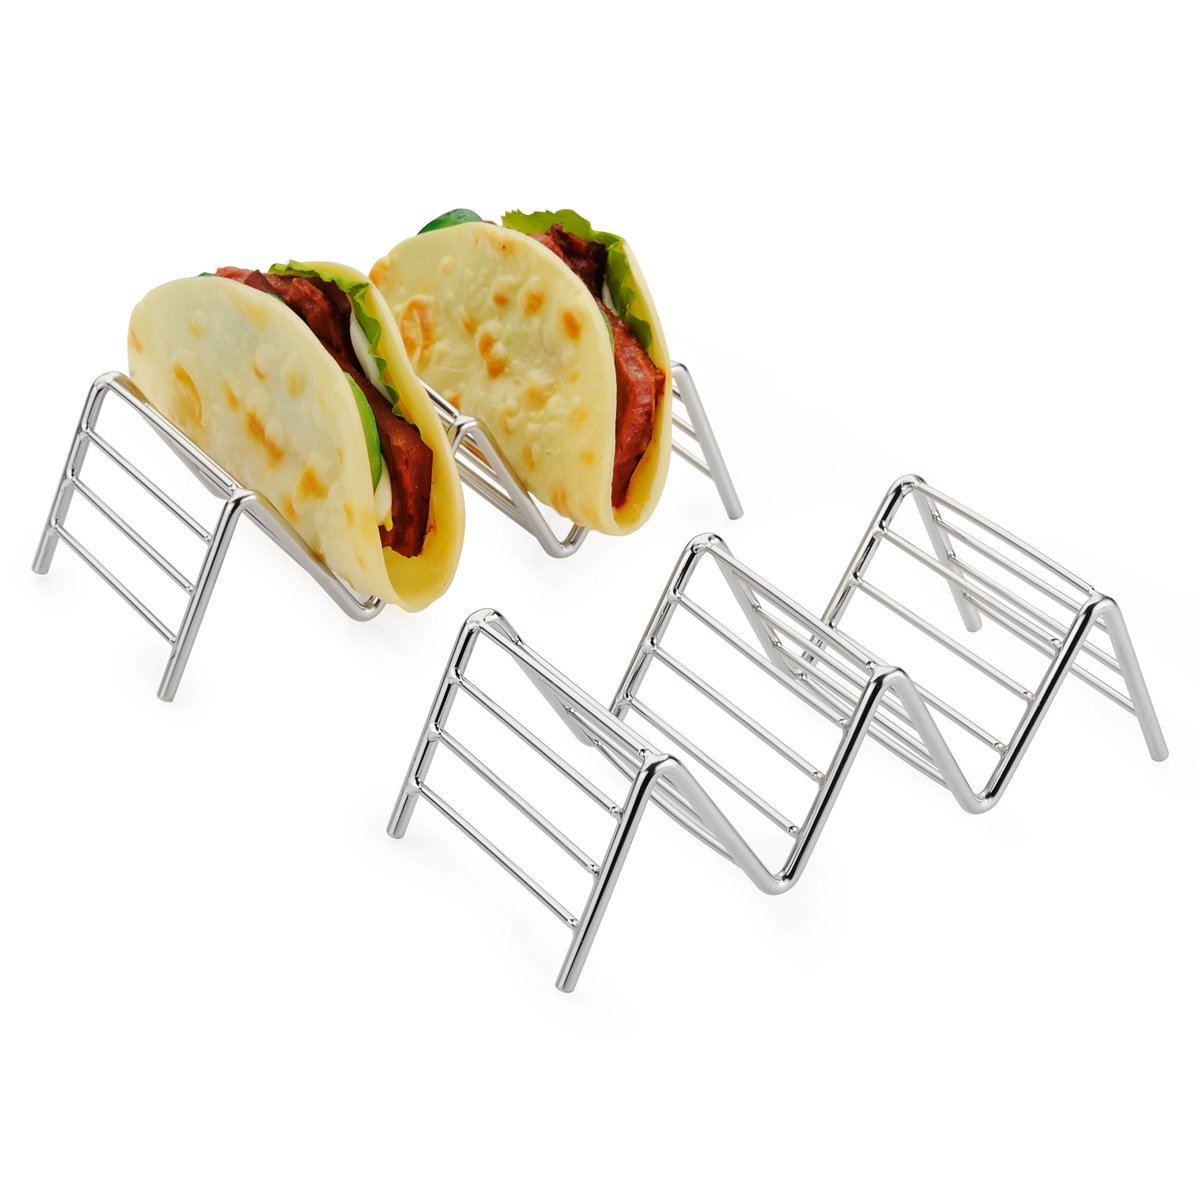 2-pack Taco Holder, Amazer Taco Stand Stainless Steel Rustproof Taco Rack Hold 2 or 3 Hard or Soft Taco Shells Taco Truck Tray Style Oven Safe for Baking